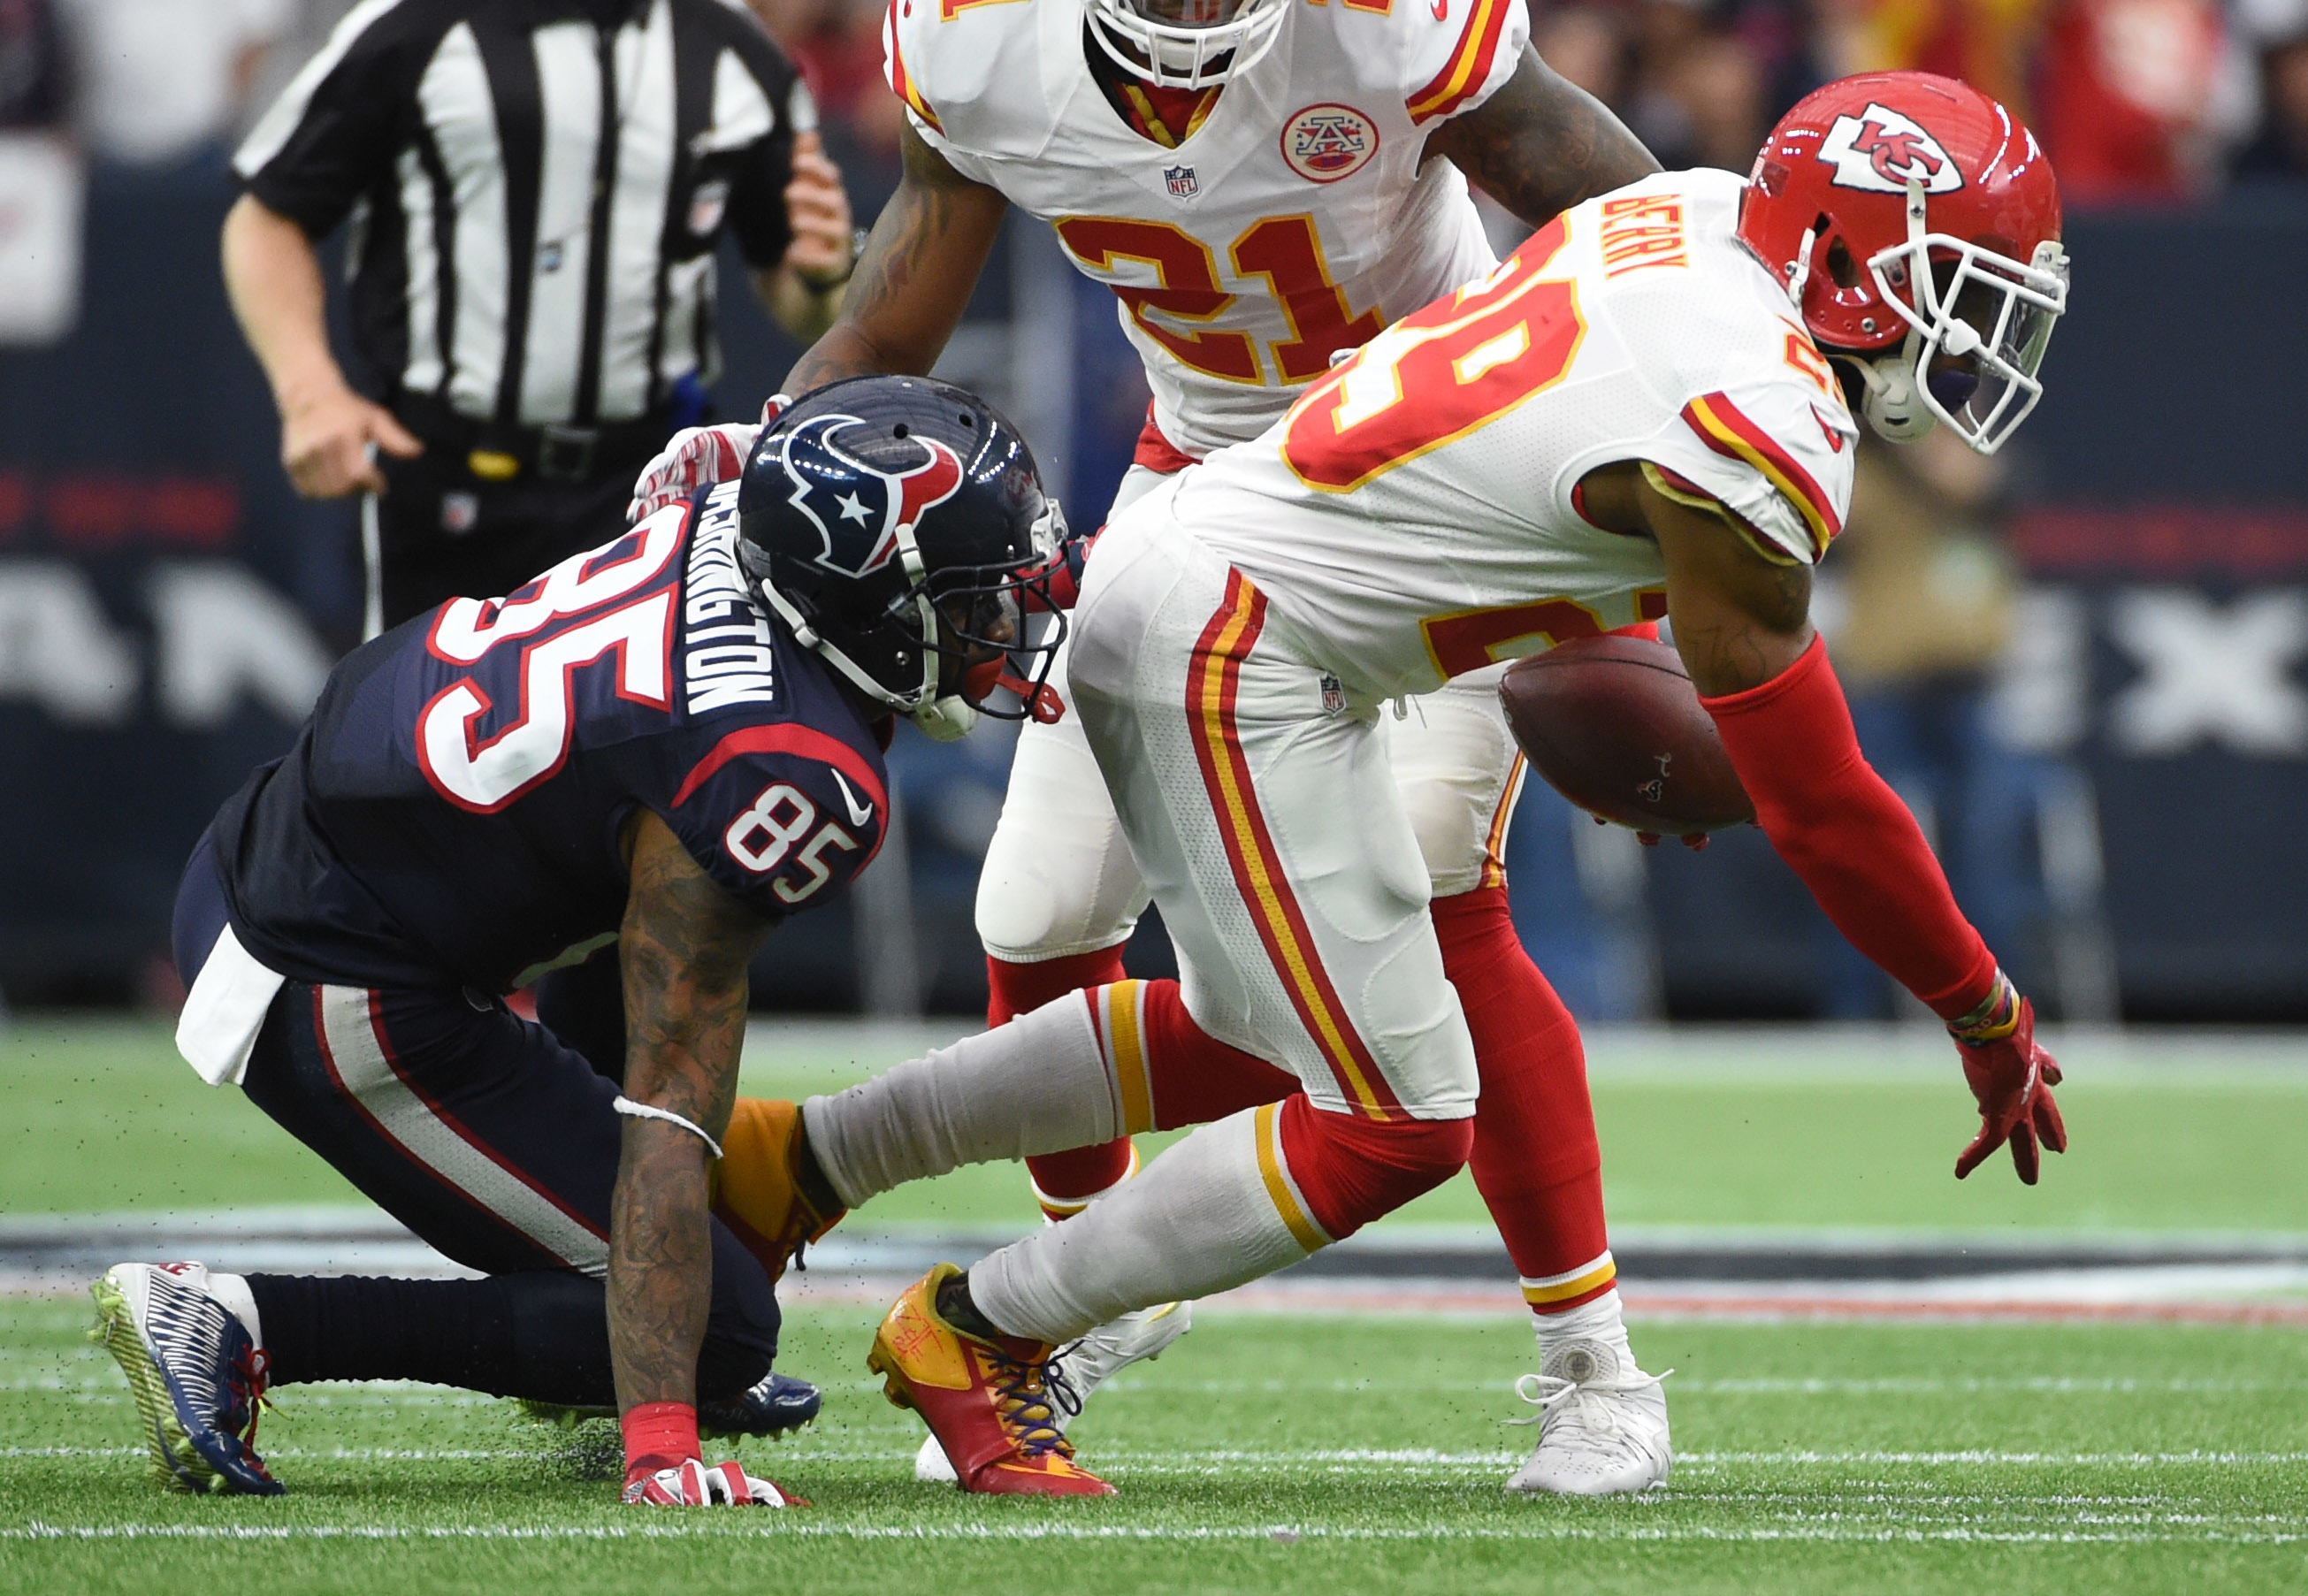 FILE - In this Jan. 9, 2016, file photo, Kansas City Chiefs free safety Eric Berry (29) intercepts a pass in front of Houston Texans wide receiver Nate Washington (85) during the first half of an NFL wild-card football game in Houston. (AP Photo/Eric Chri